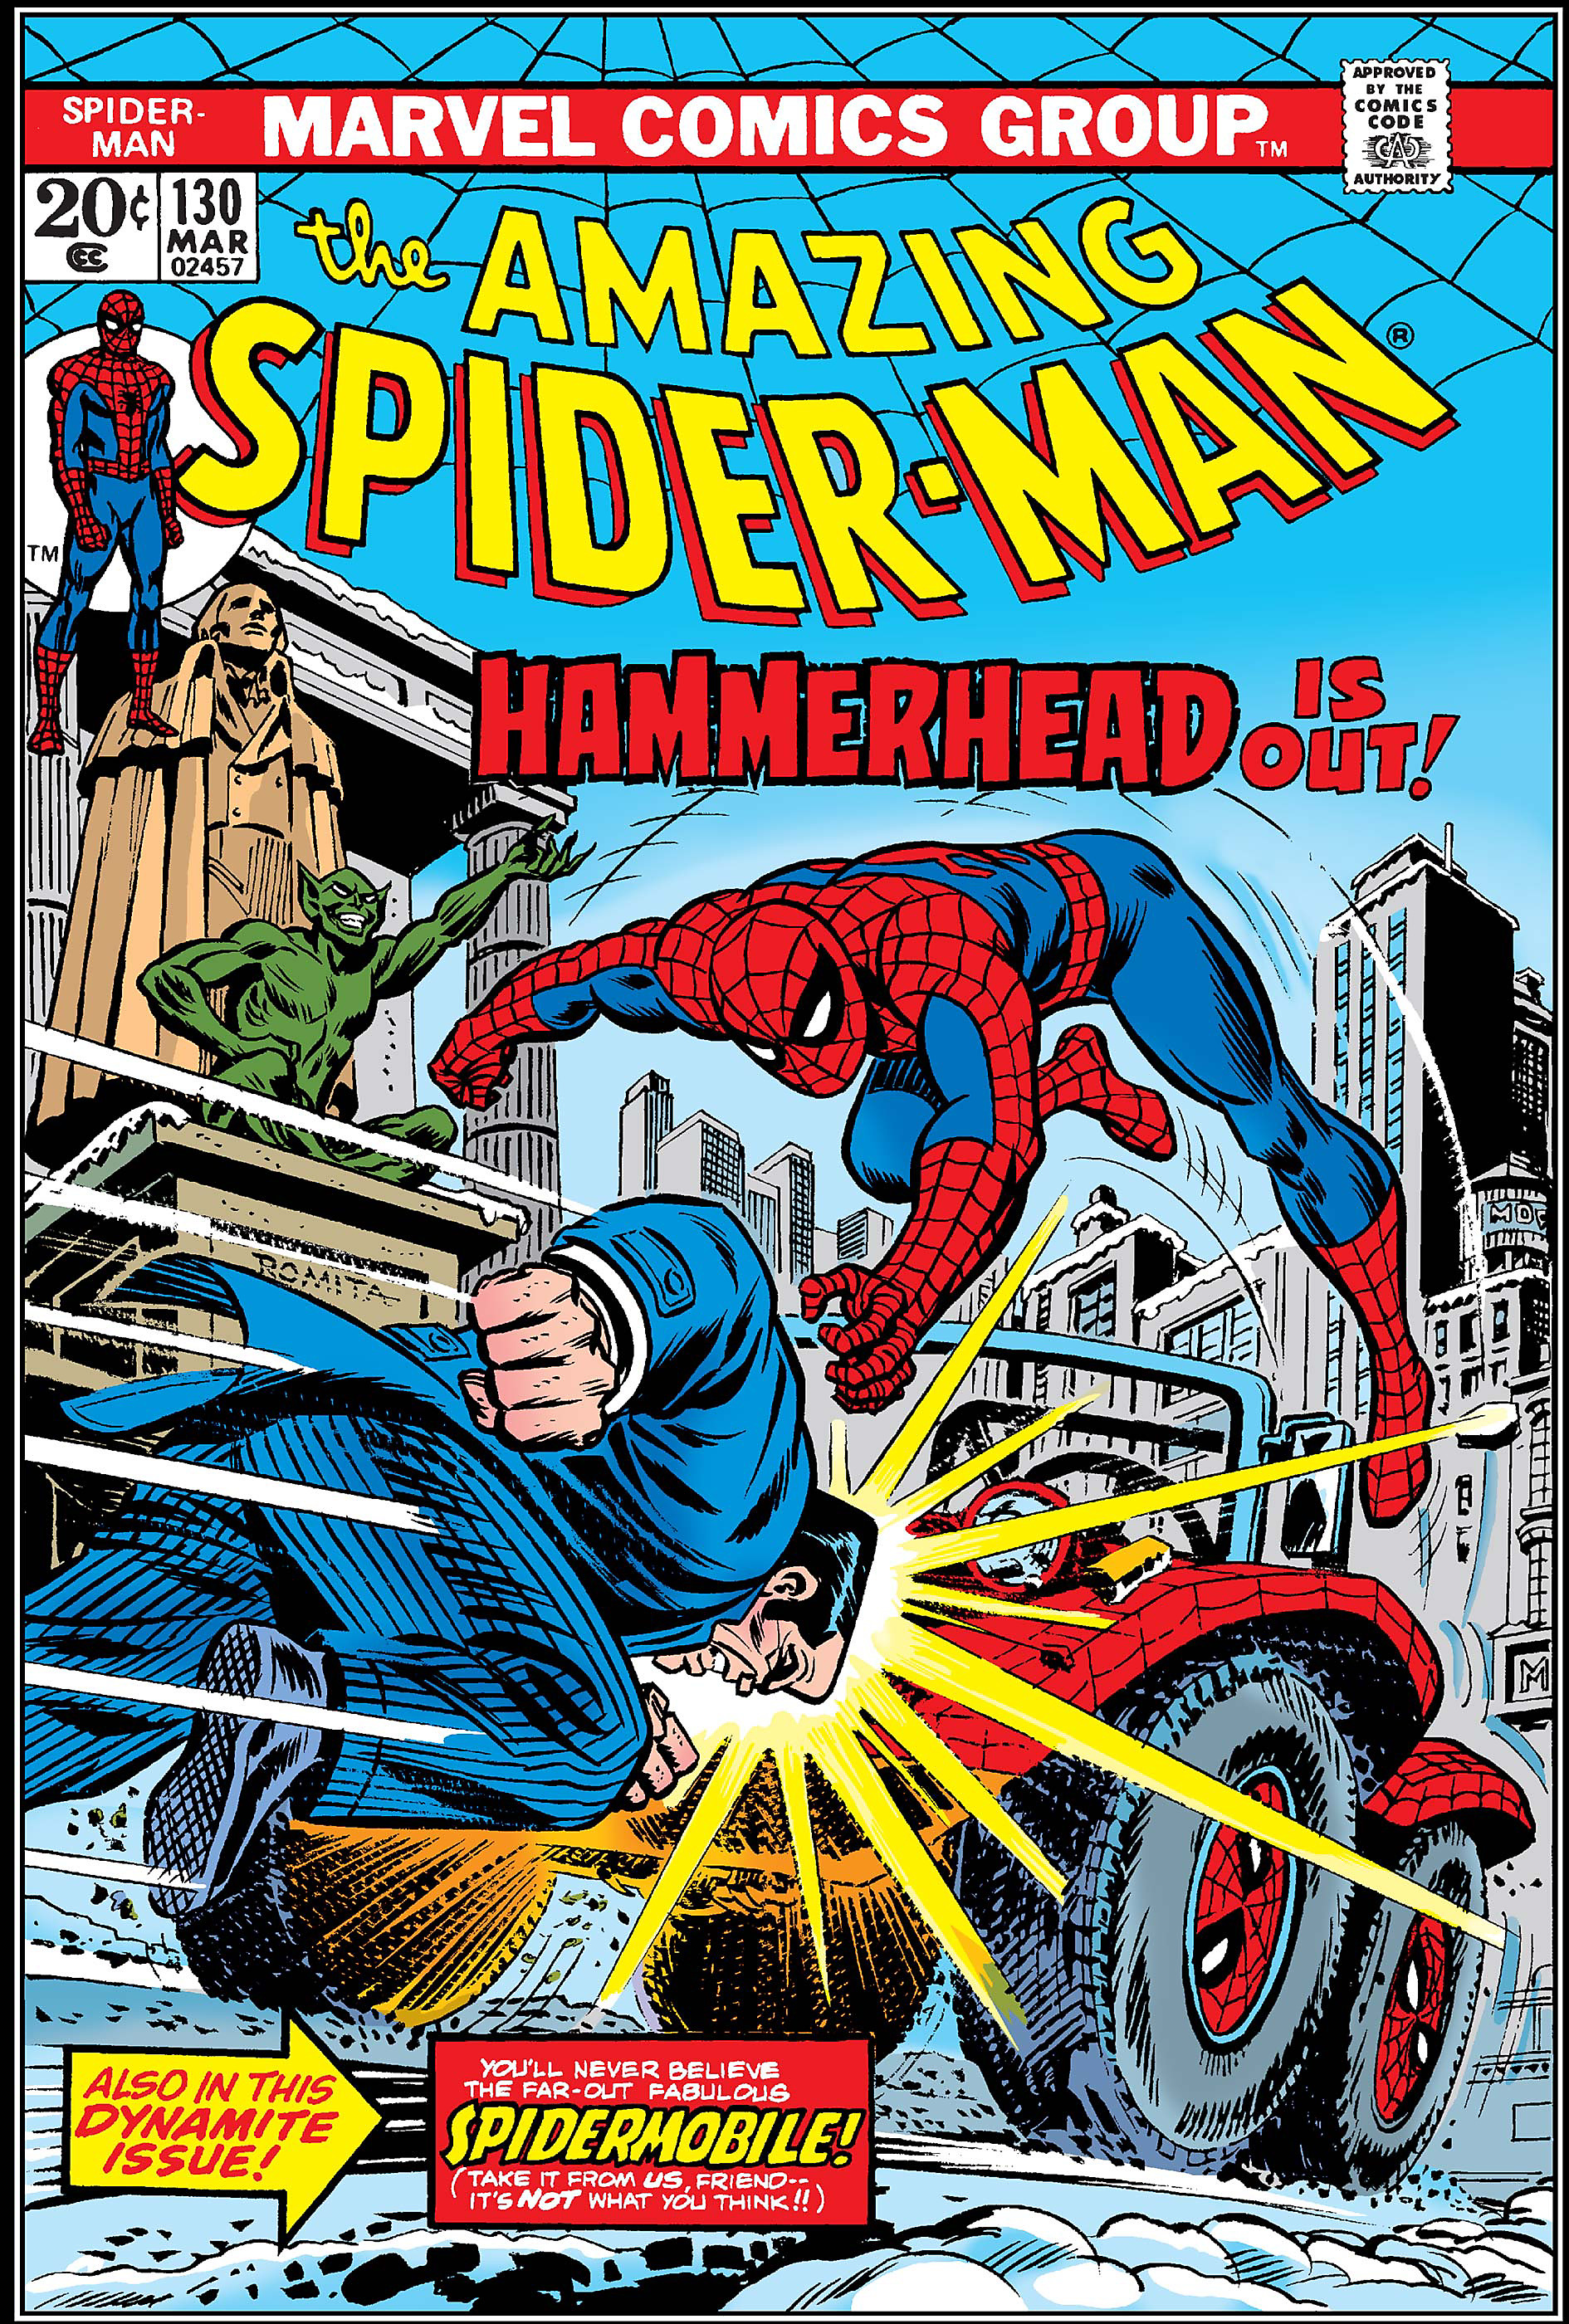 Amazing Spider-Man (1963) #130